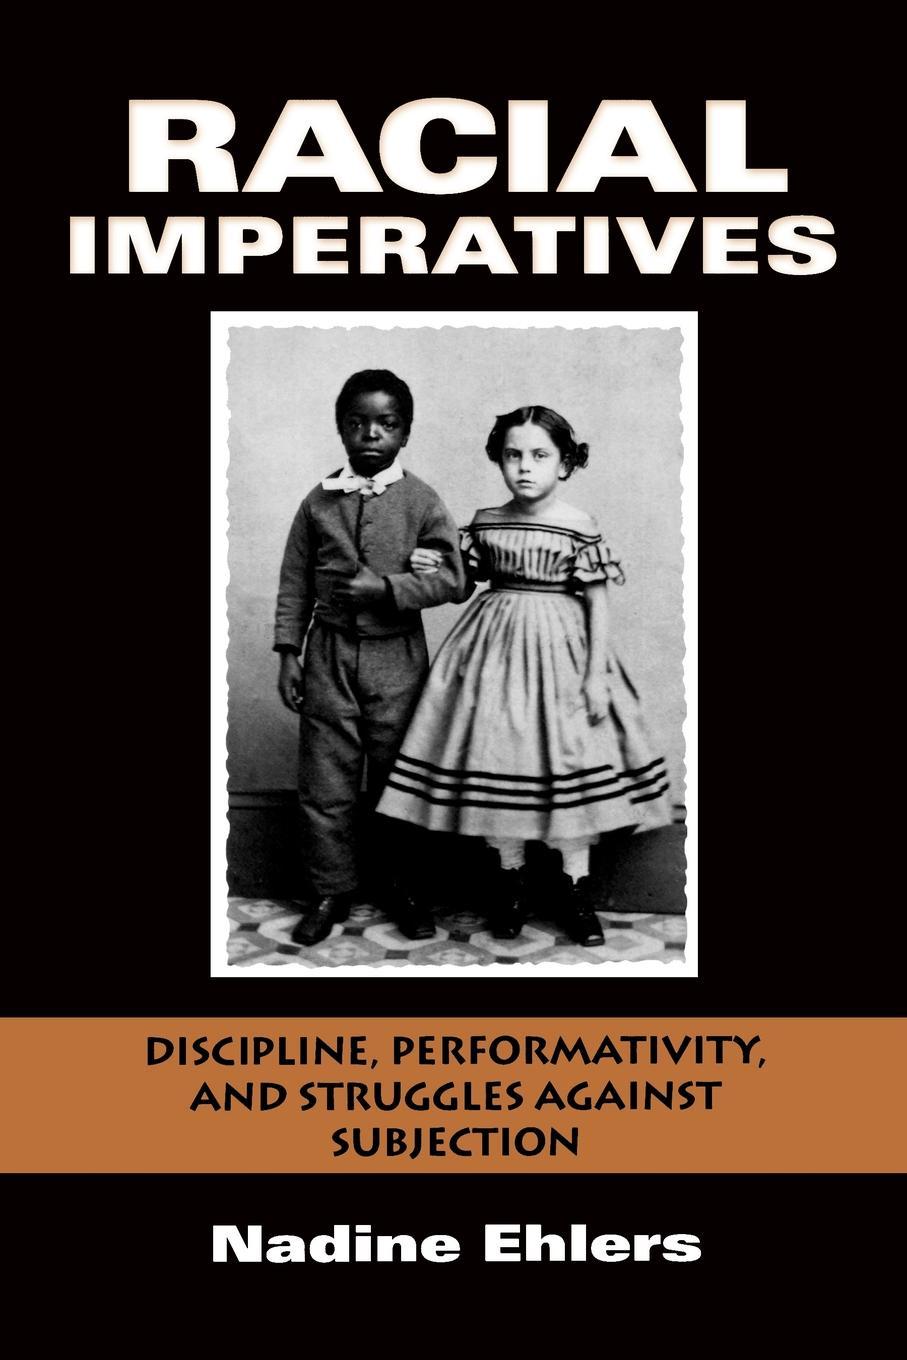 Nadine Ehlers Racial Imperatives. Discipline, Performativity, and Struggles Against Subjection